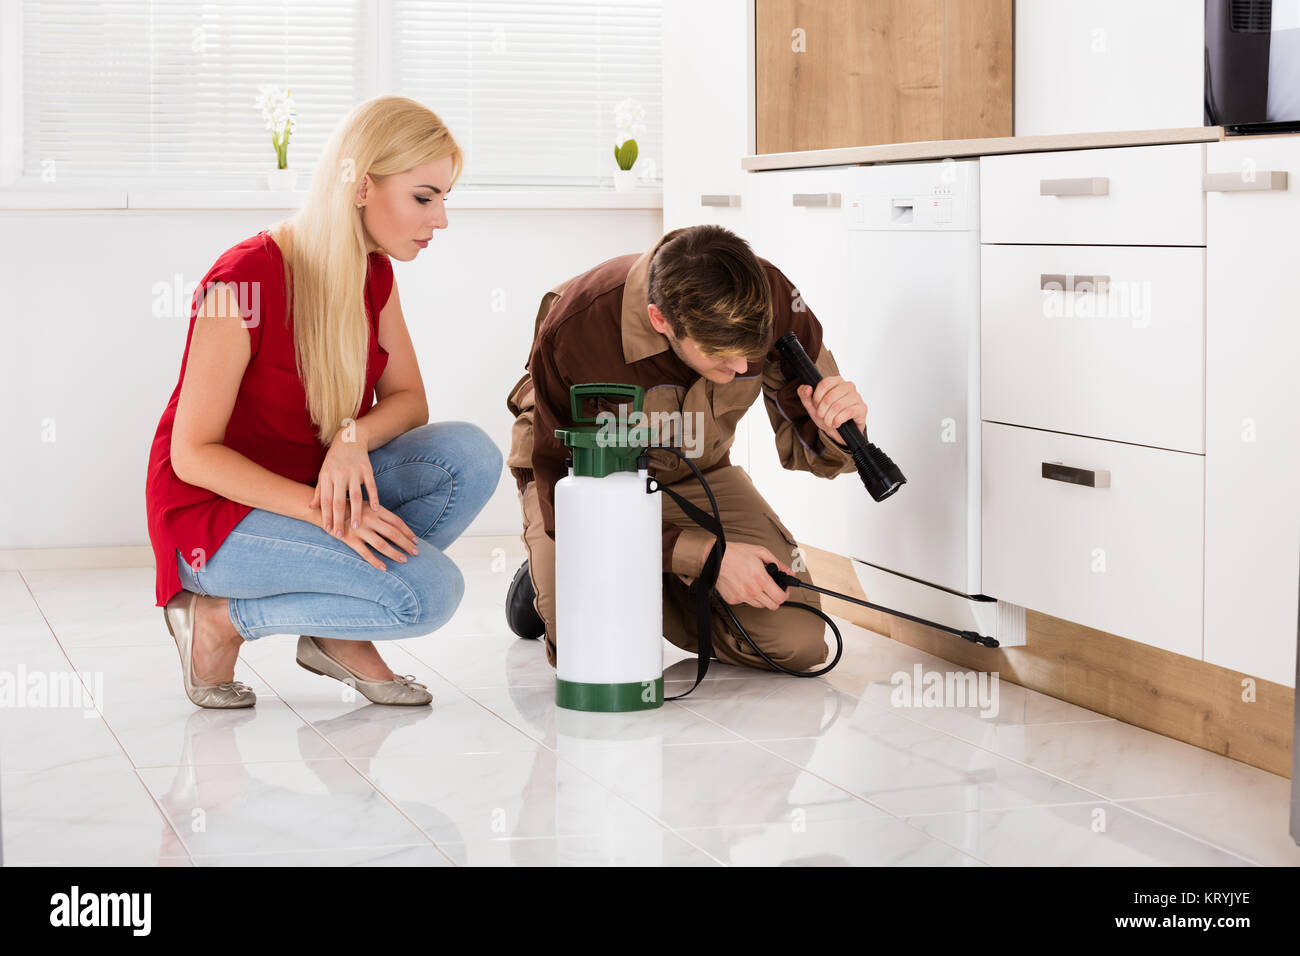 Woman Looking At Male Worker Spraying Insecticide - Stock Image